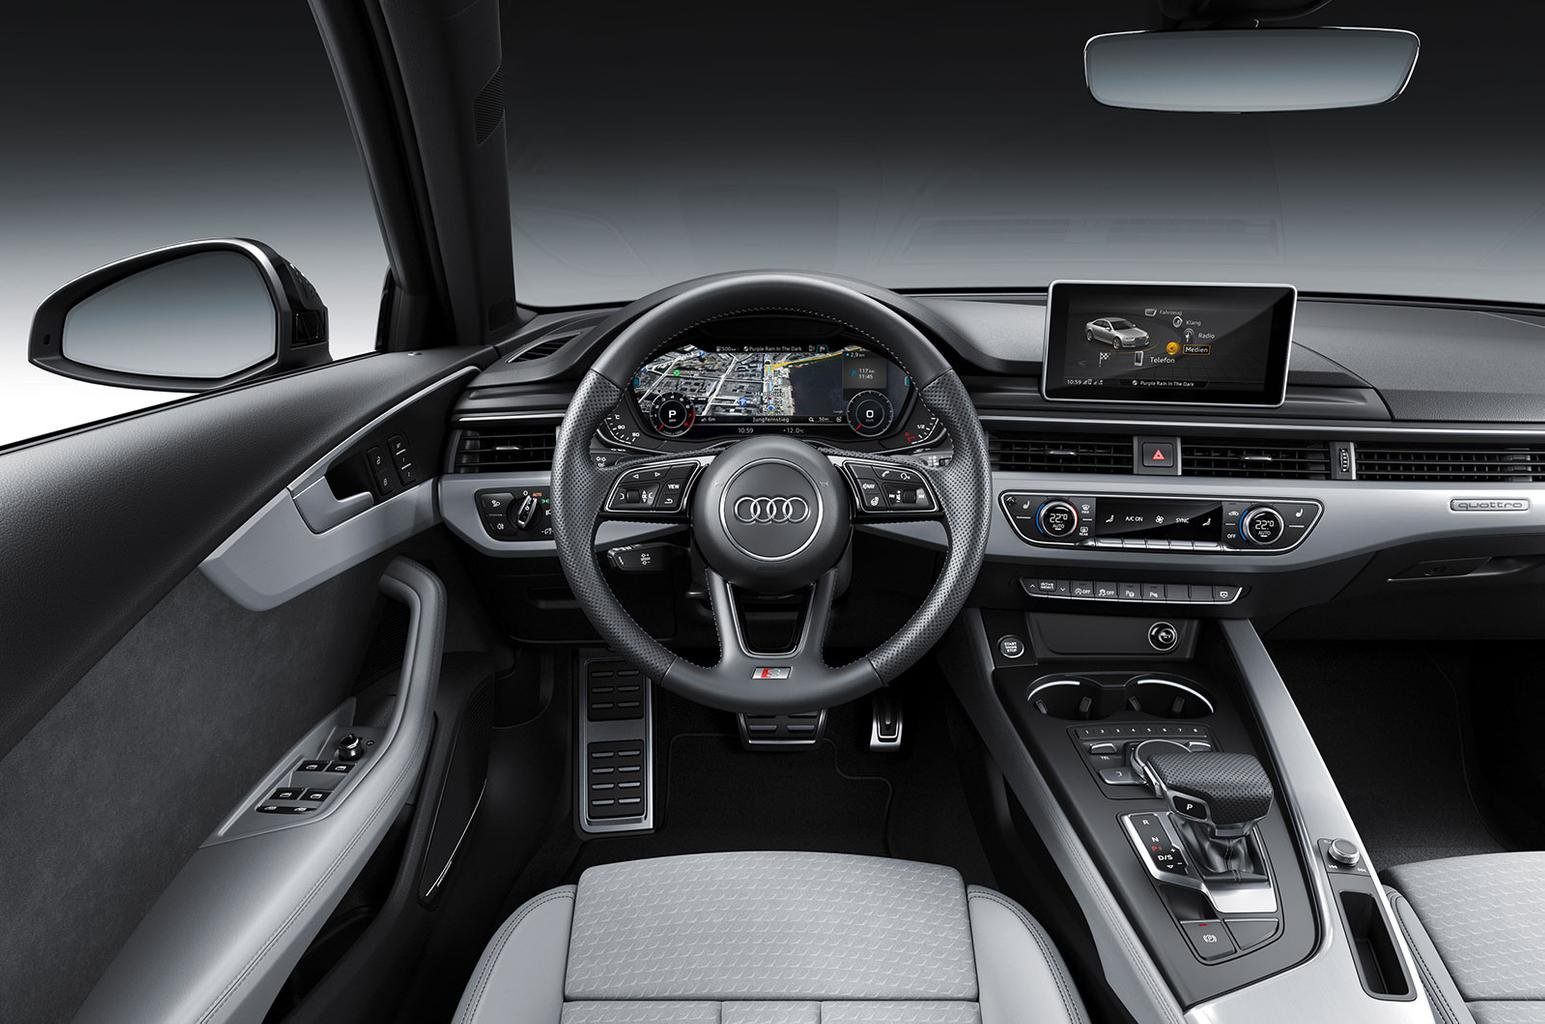 Audi A4 updated with new equipment and styling